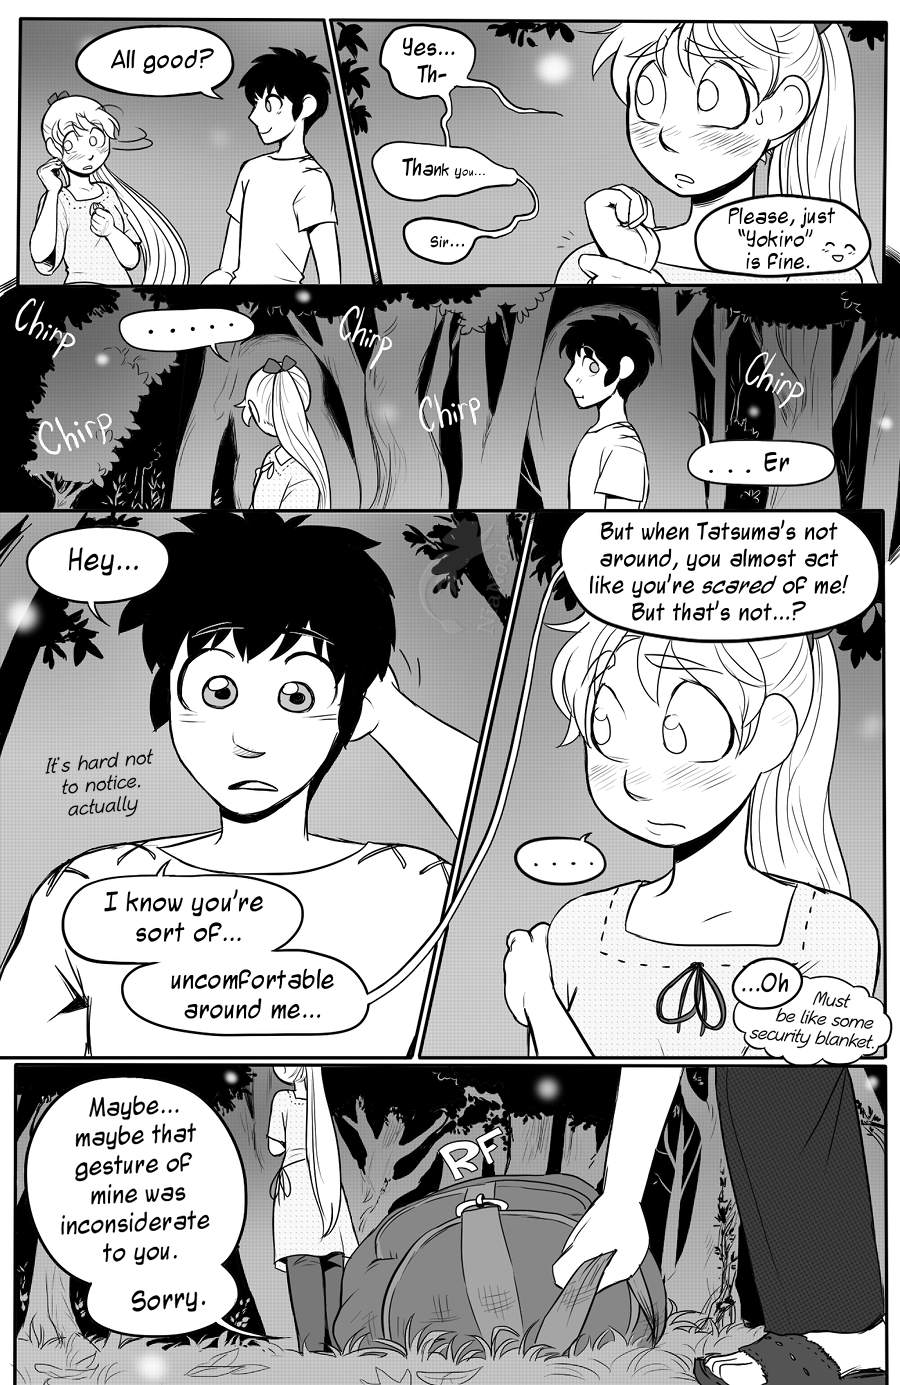 Page 17 (Book 4)